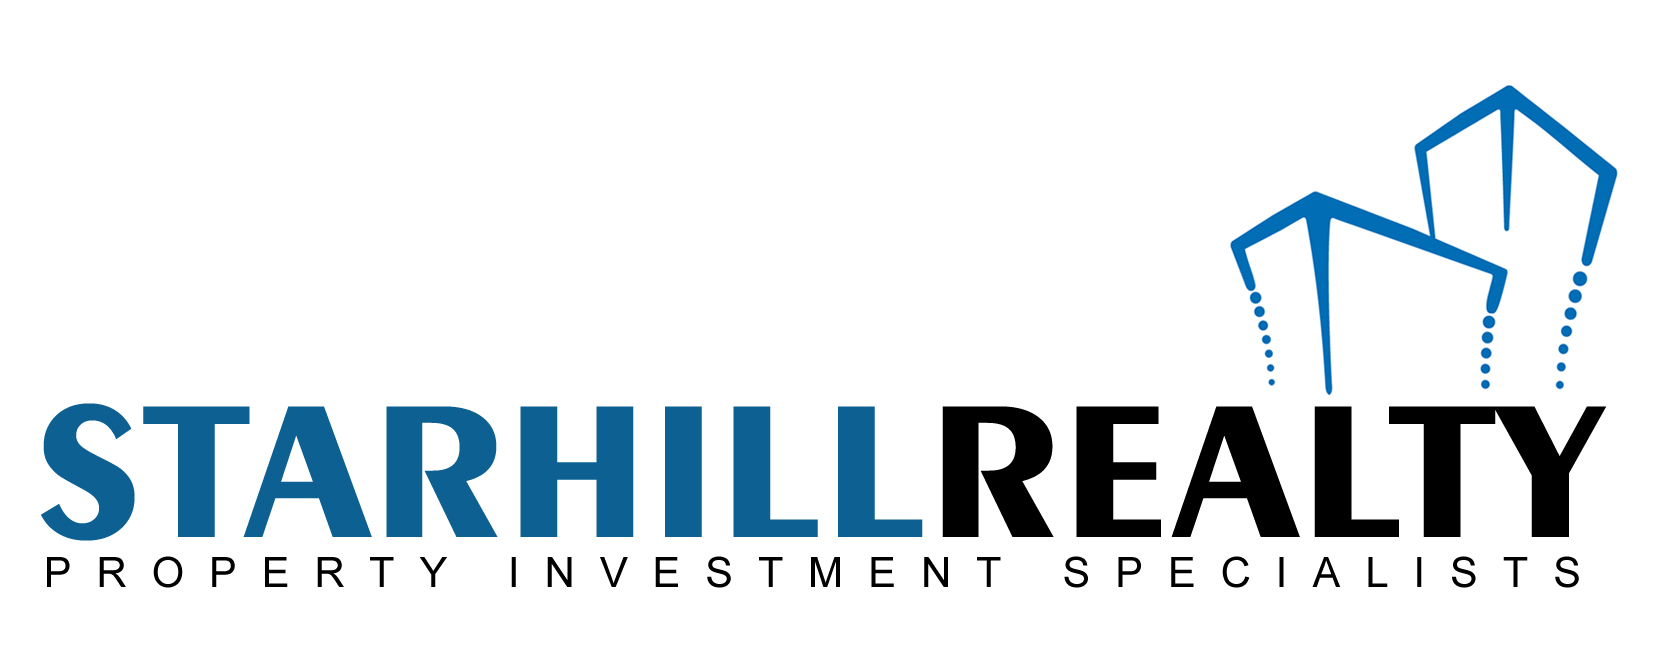 Starhill Realty Ltd (UK) Logo